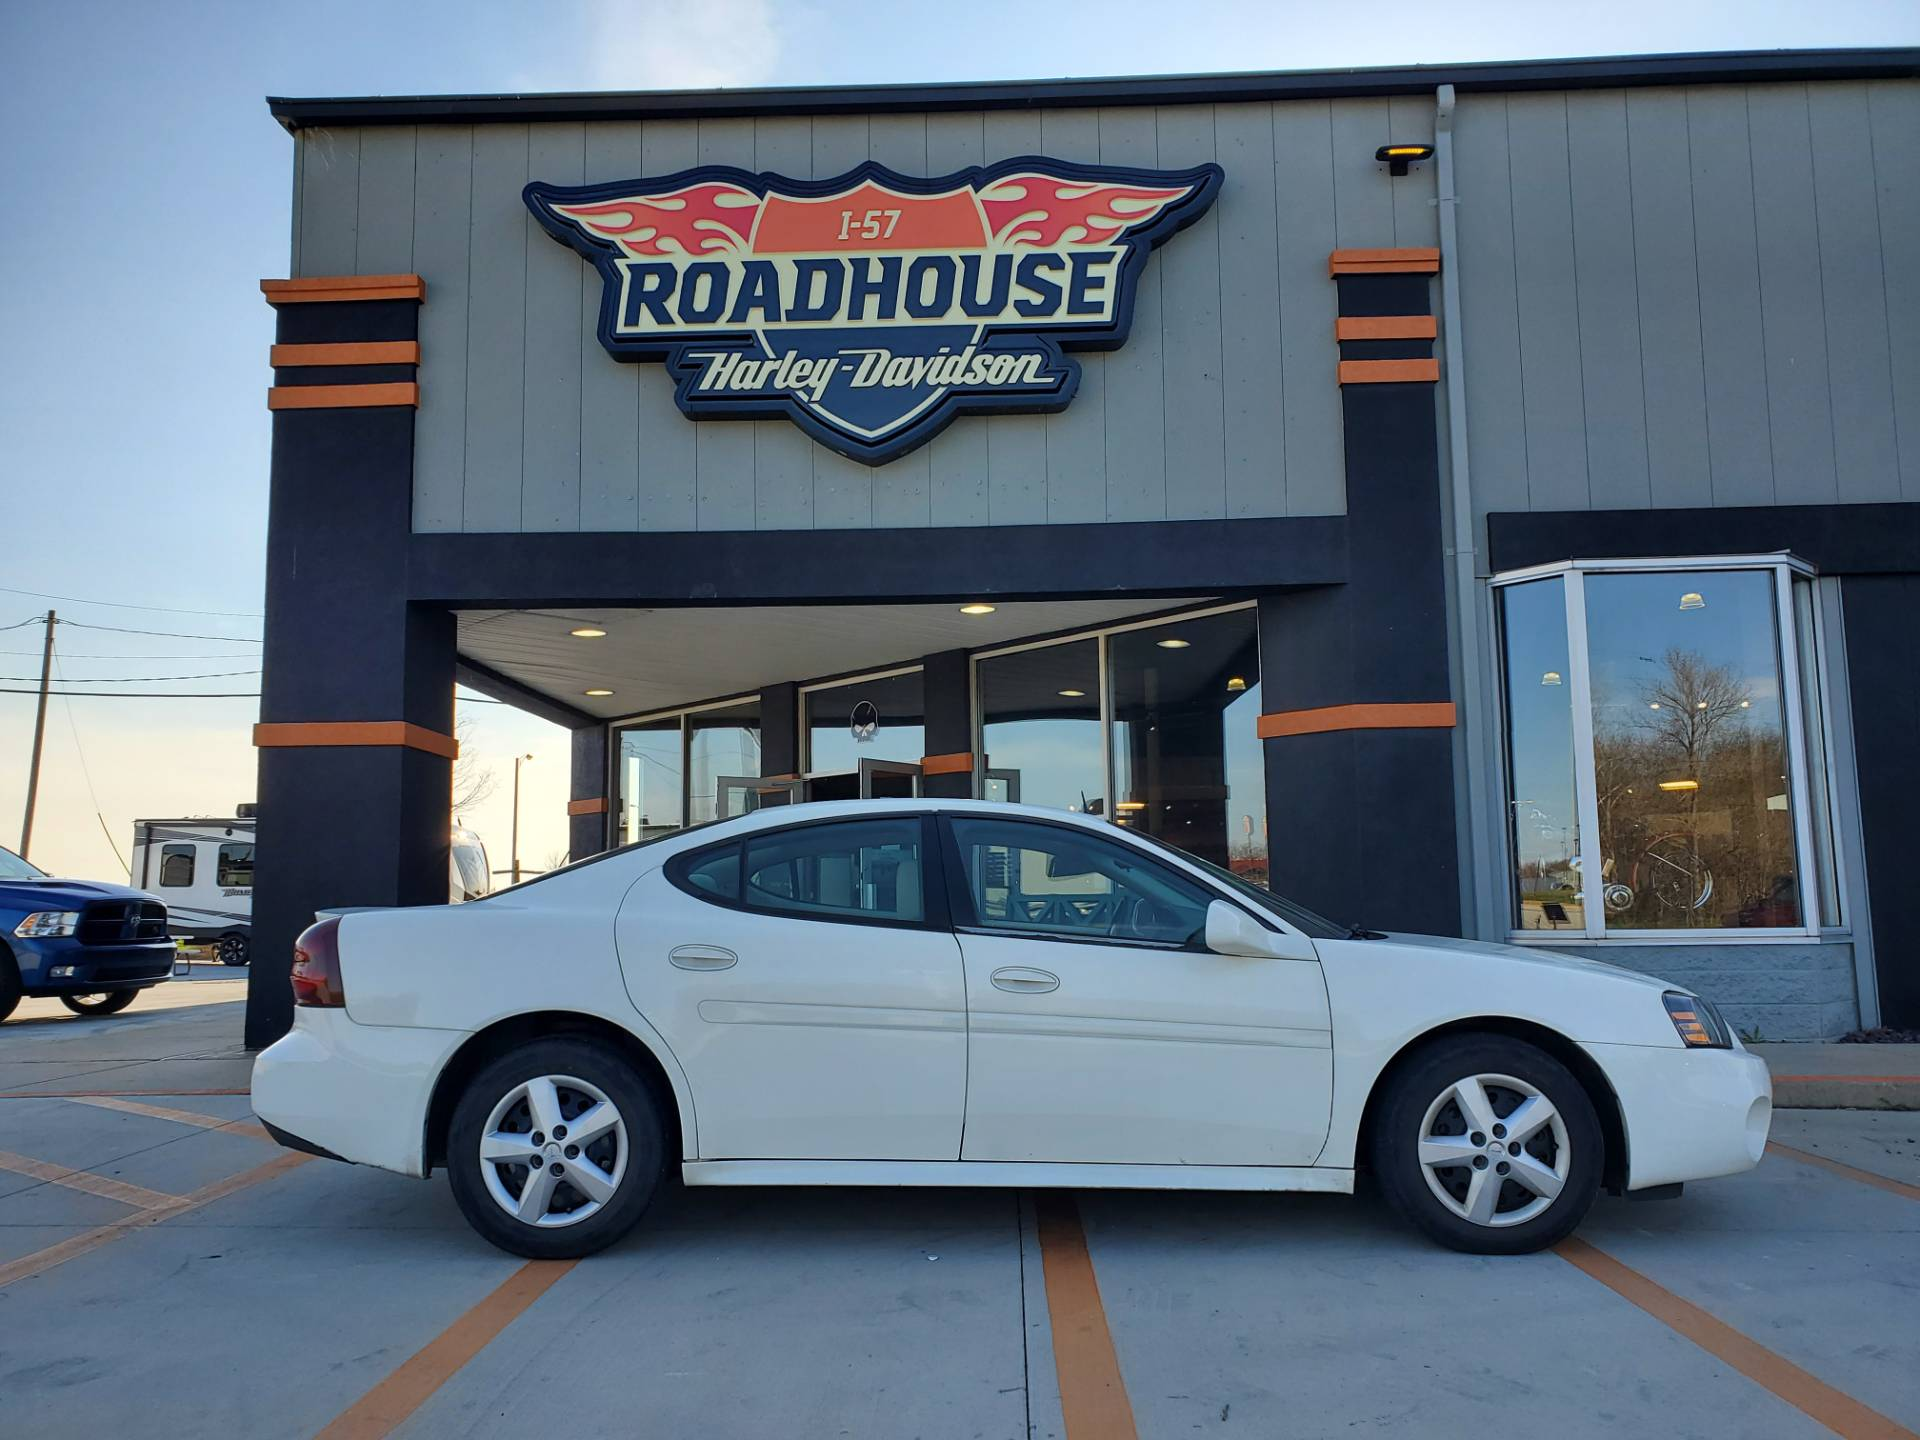 2005 Pontiac GRAND PRIX in Mount Vernon, Illinois - Photo 1